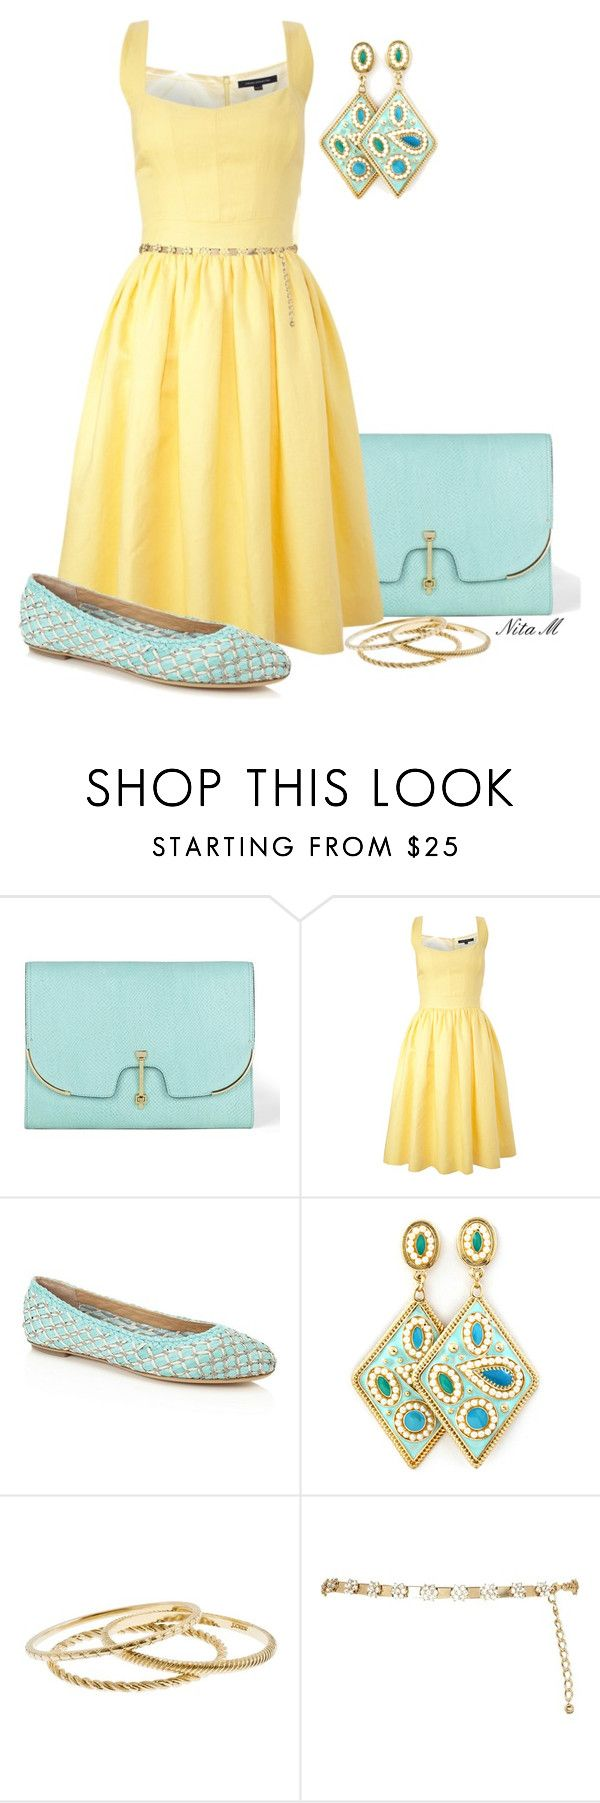 """""""Light Aqua Shoes"""" by mz-happy ❤ liked on Polyvore featuring VC Signature, French Connection, Salvatore Ferragamo, Domina, J.Crew and River Island"""